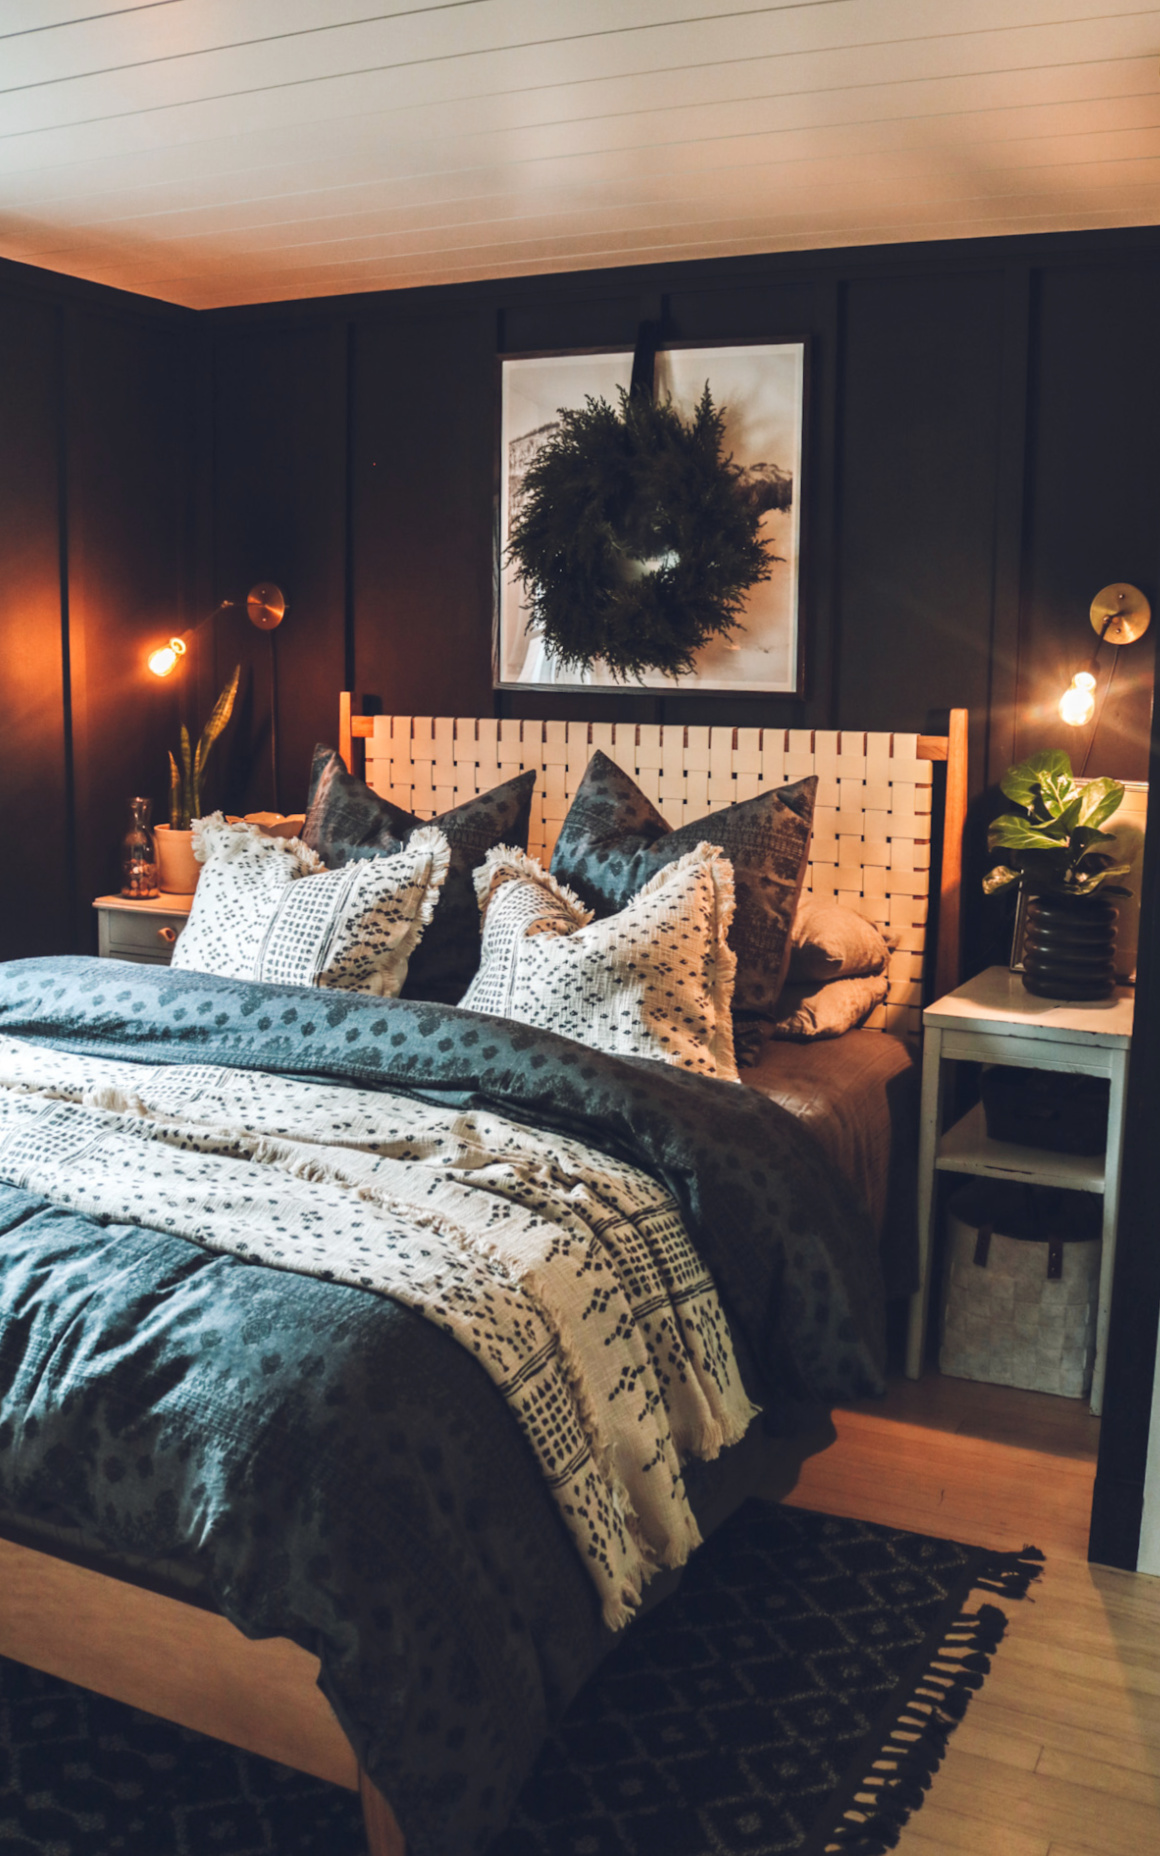 Winter is Coming…get the Bedroom Cozy! Cozy winter bedroom